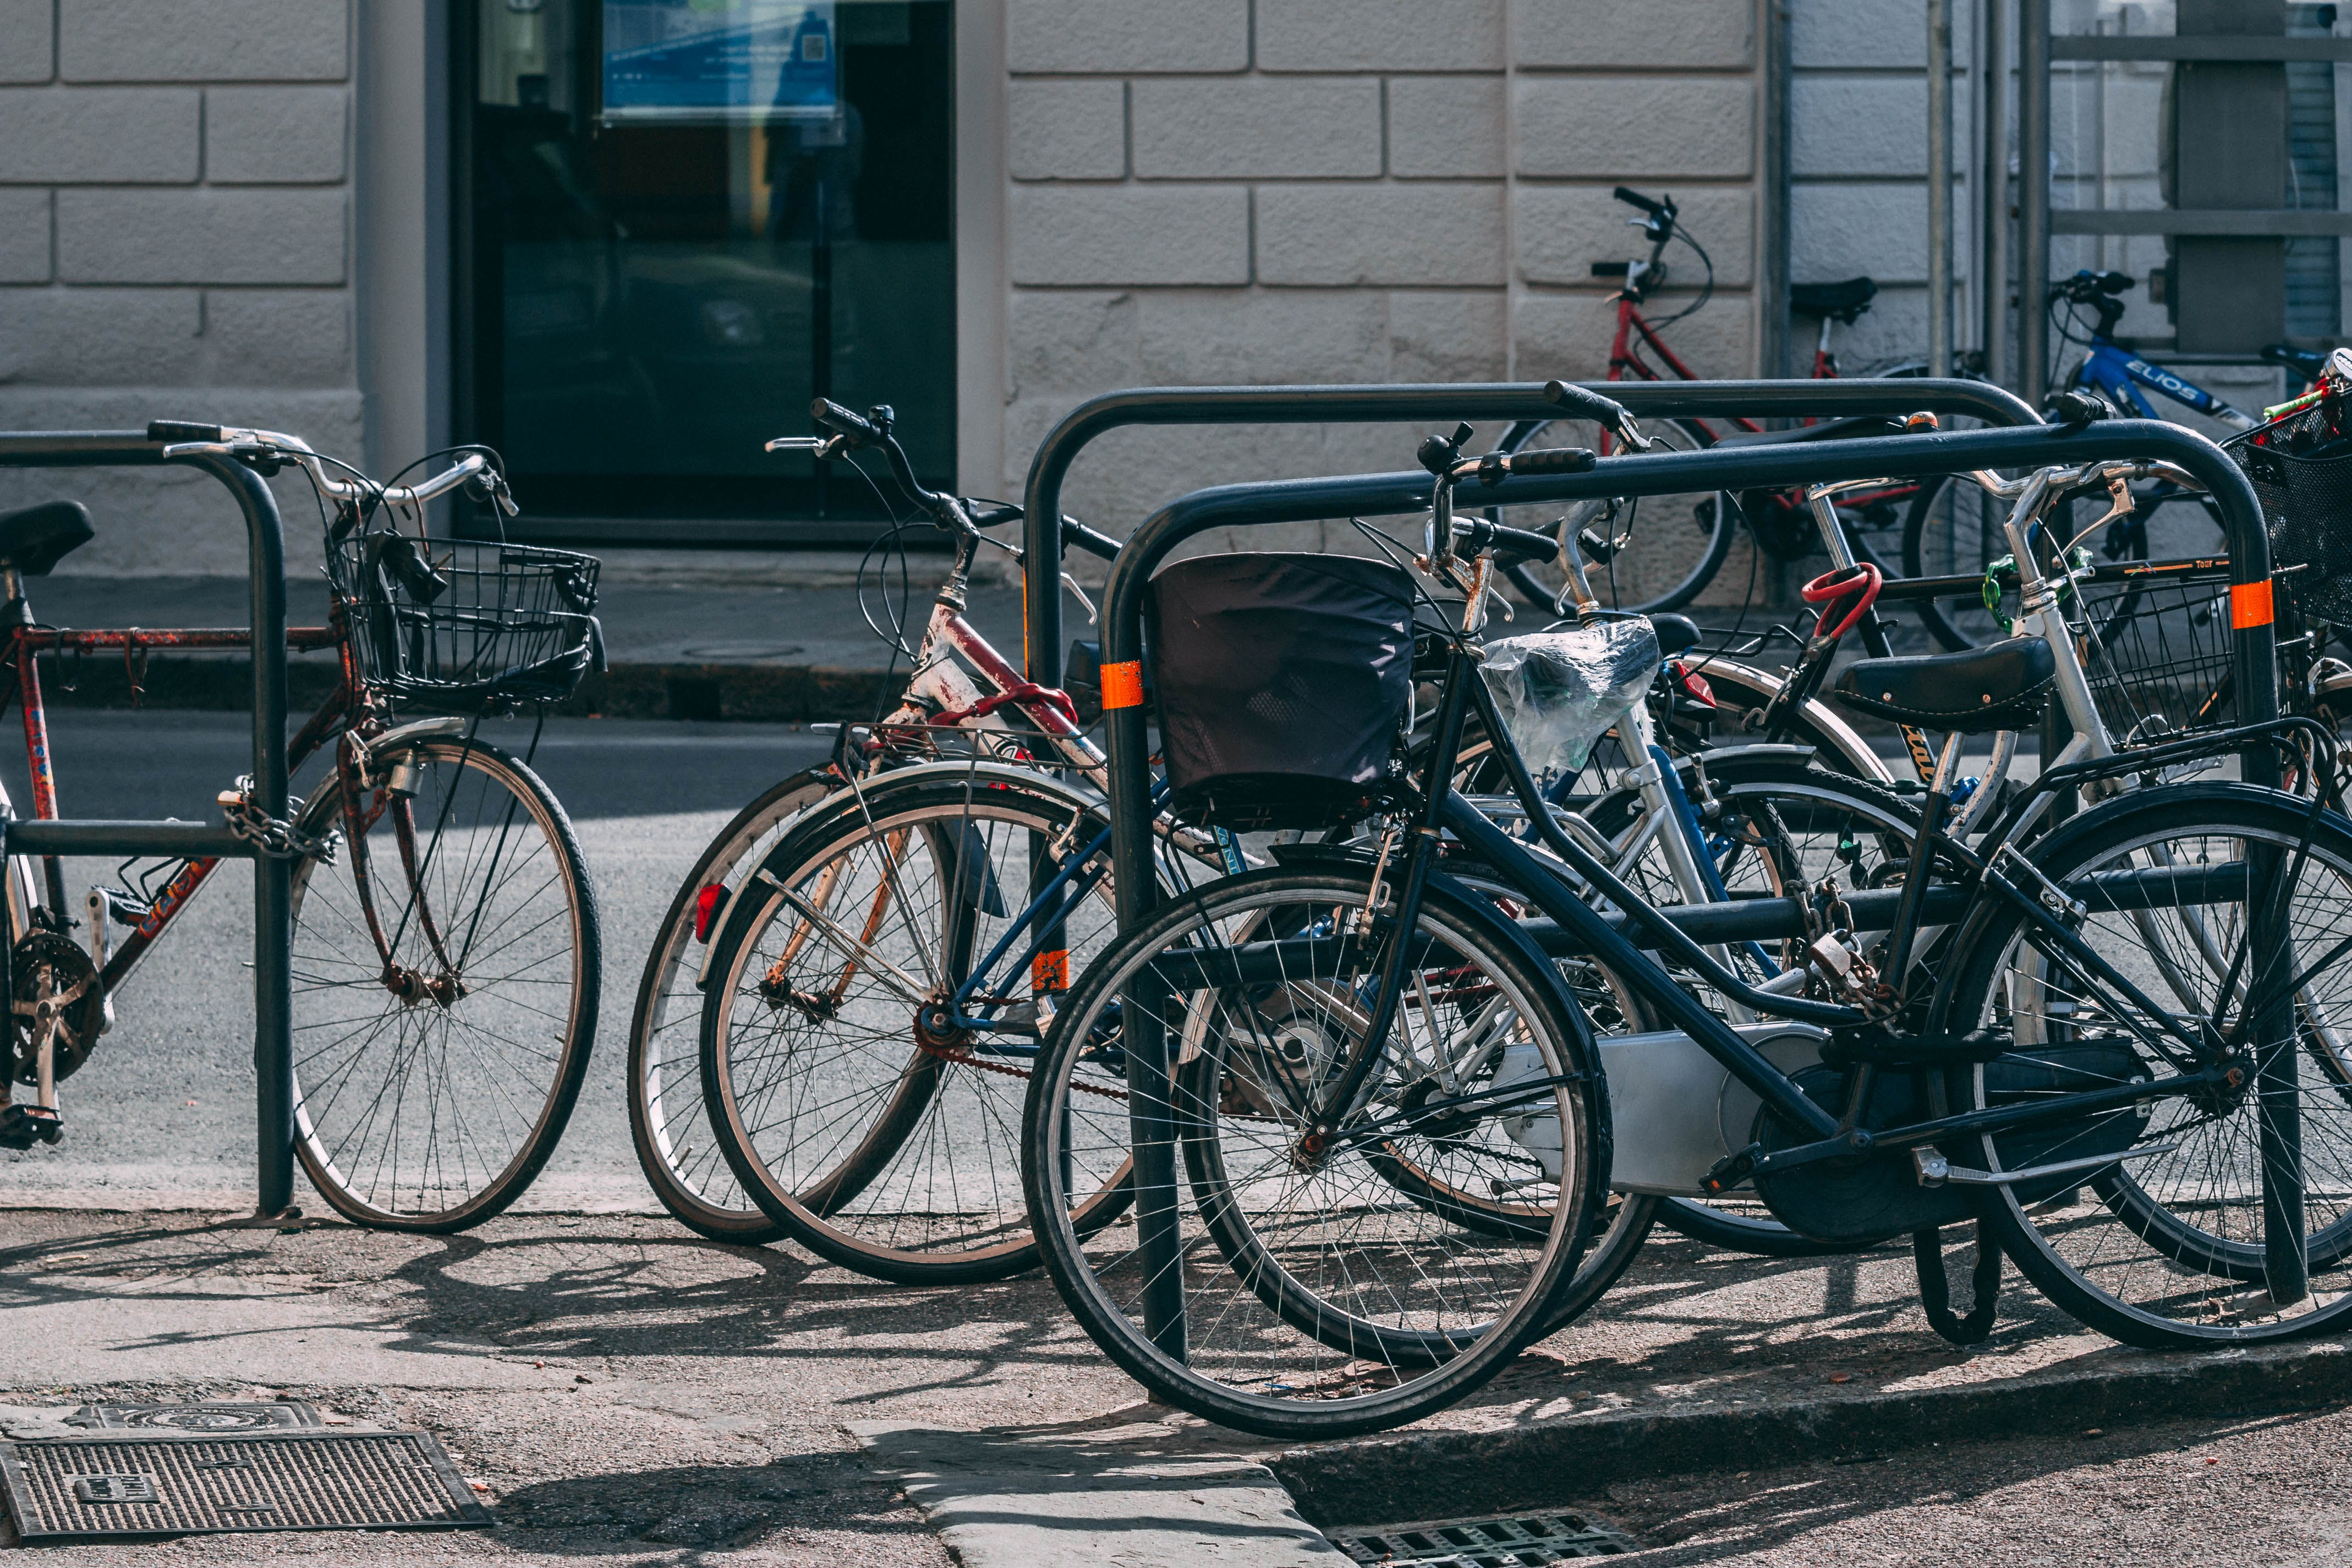 Free stock photo of bicycle, bicycle parking